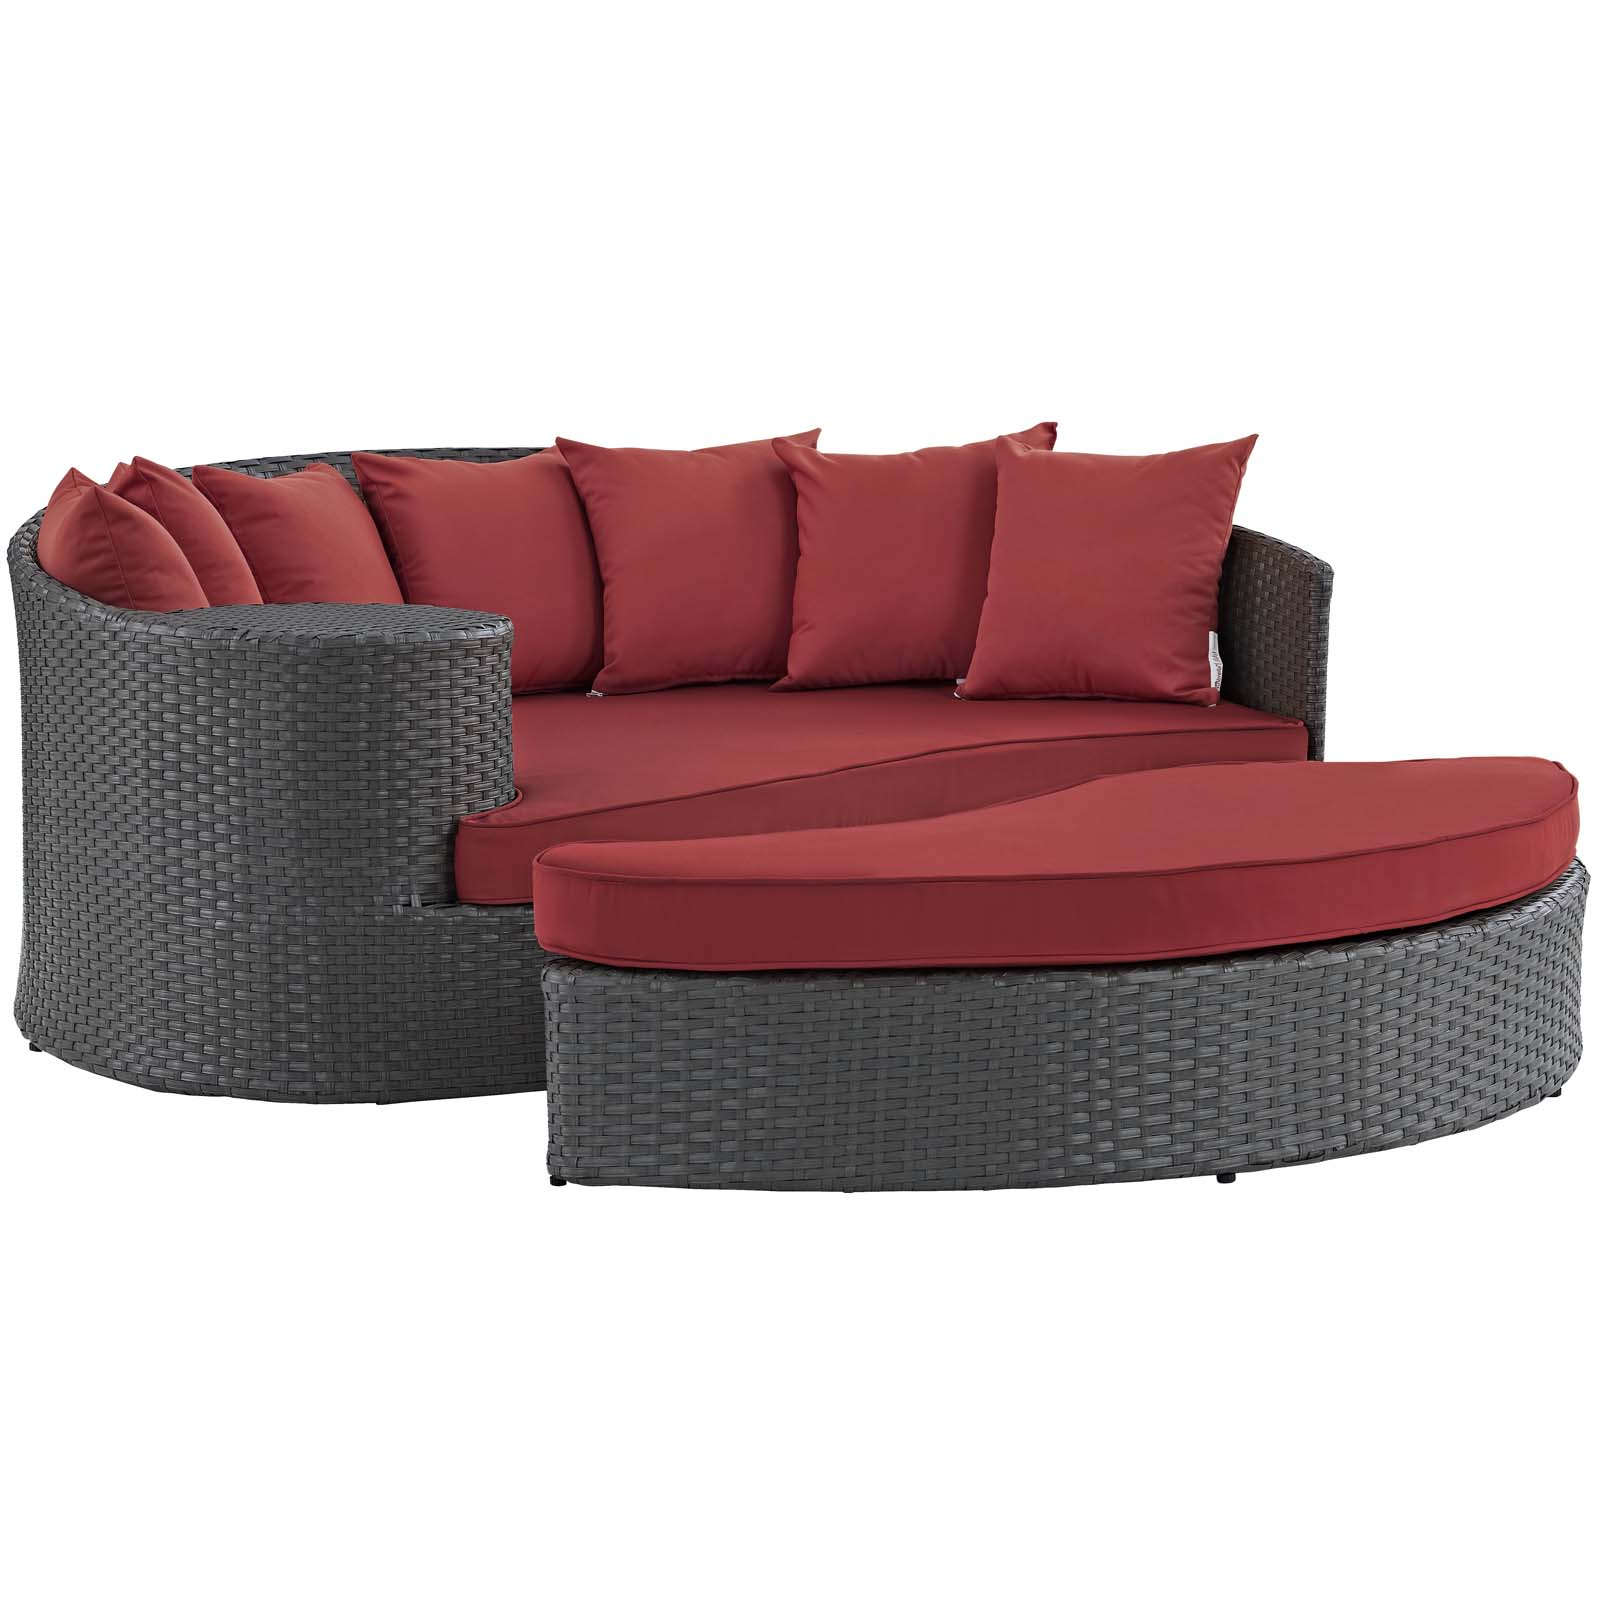 Modern Contemporary Urban Design Outdoor Patio Balcony Garden Furniture Lounge Daybed Sofa Bed, Sunbrella Rattan Wicker, Red